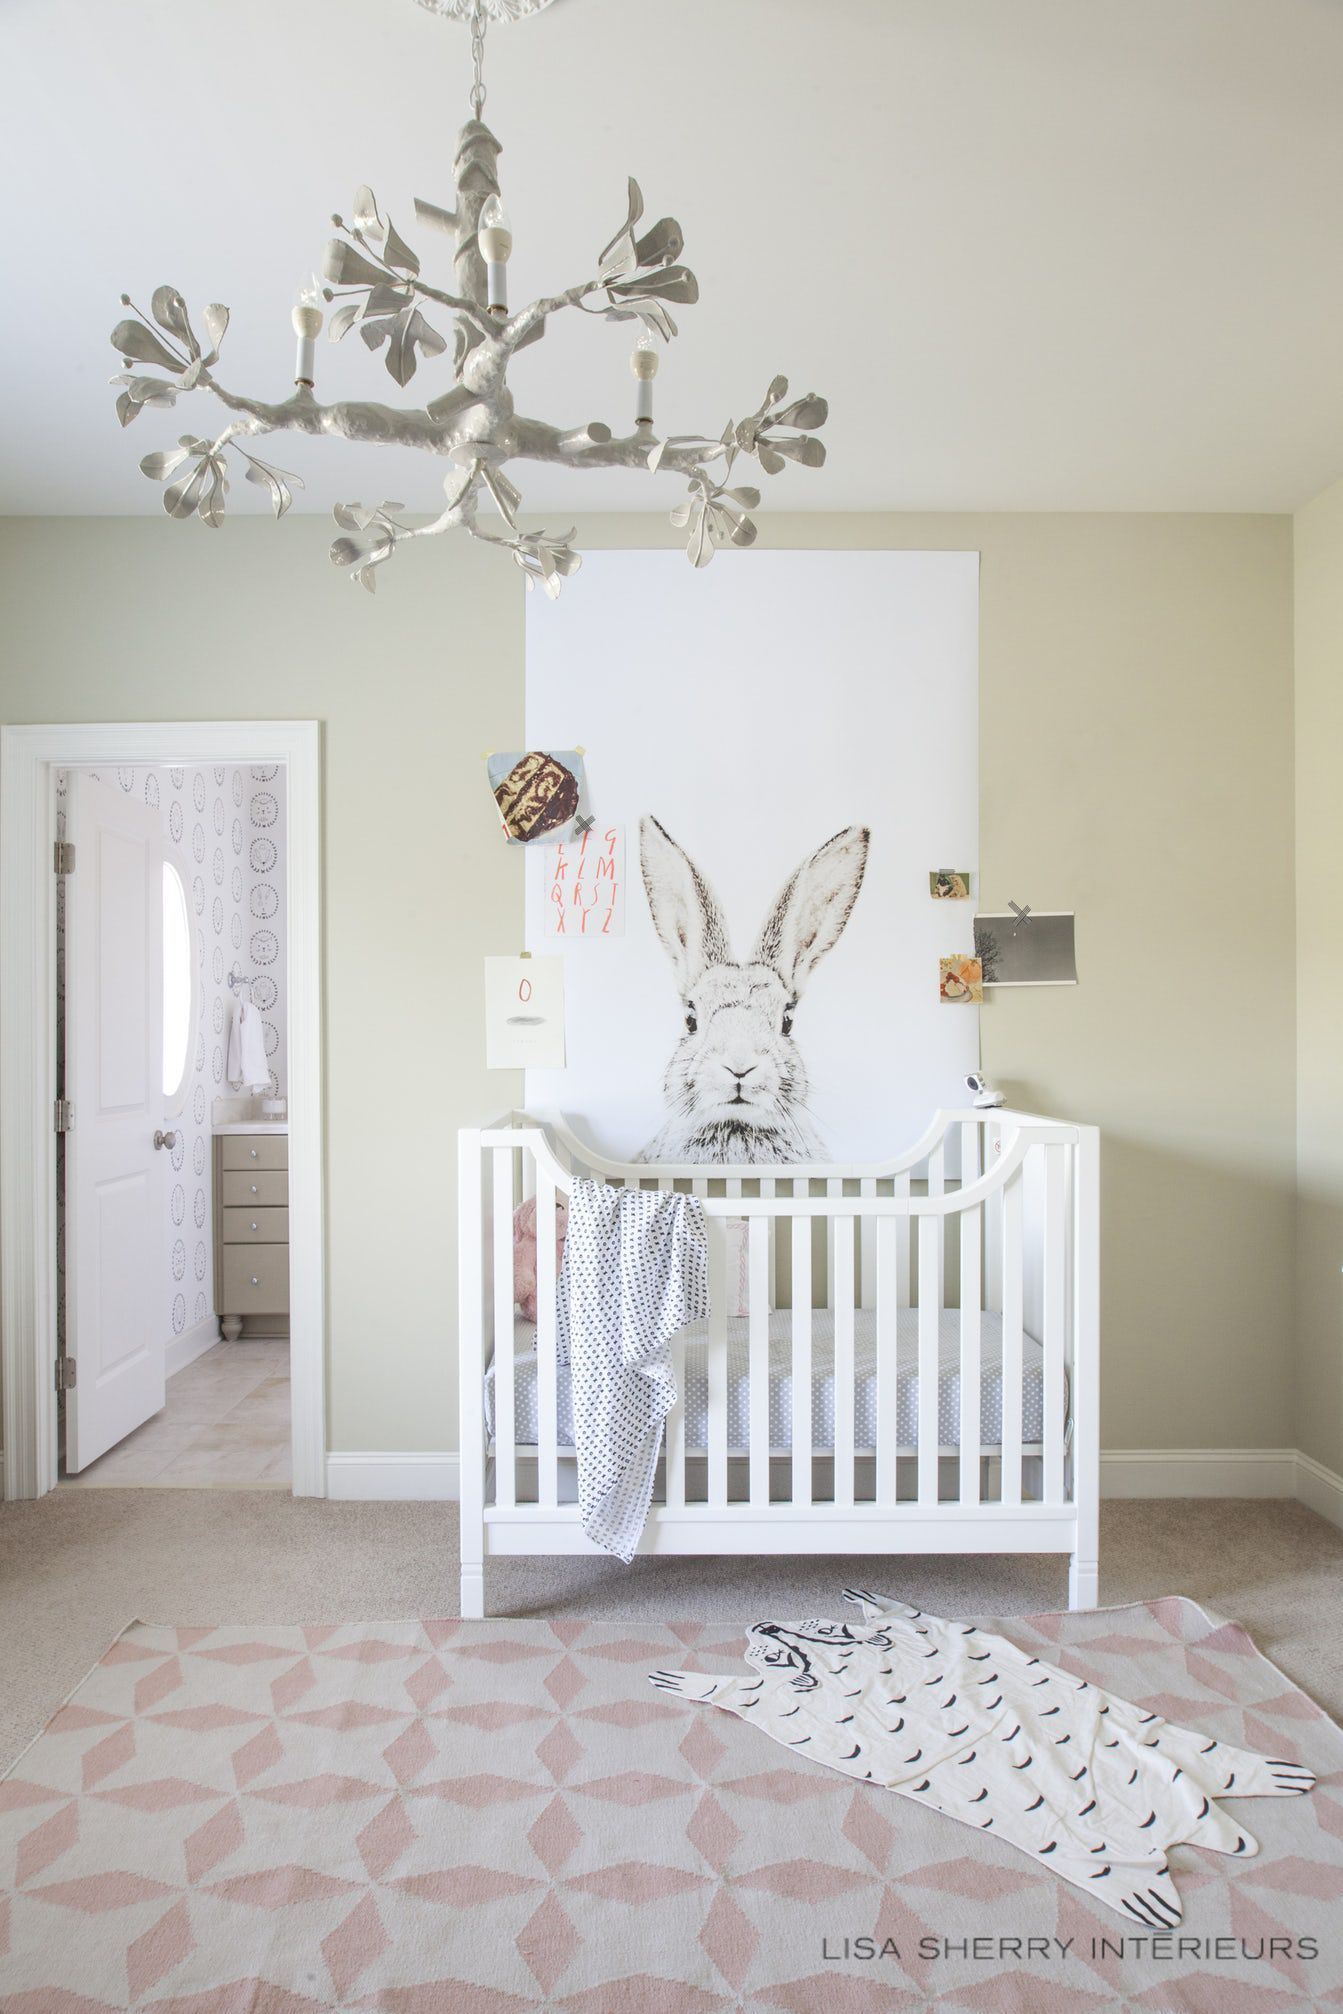 Stylish Baby Rooms Even Adults Would Adore images